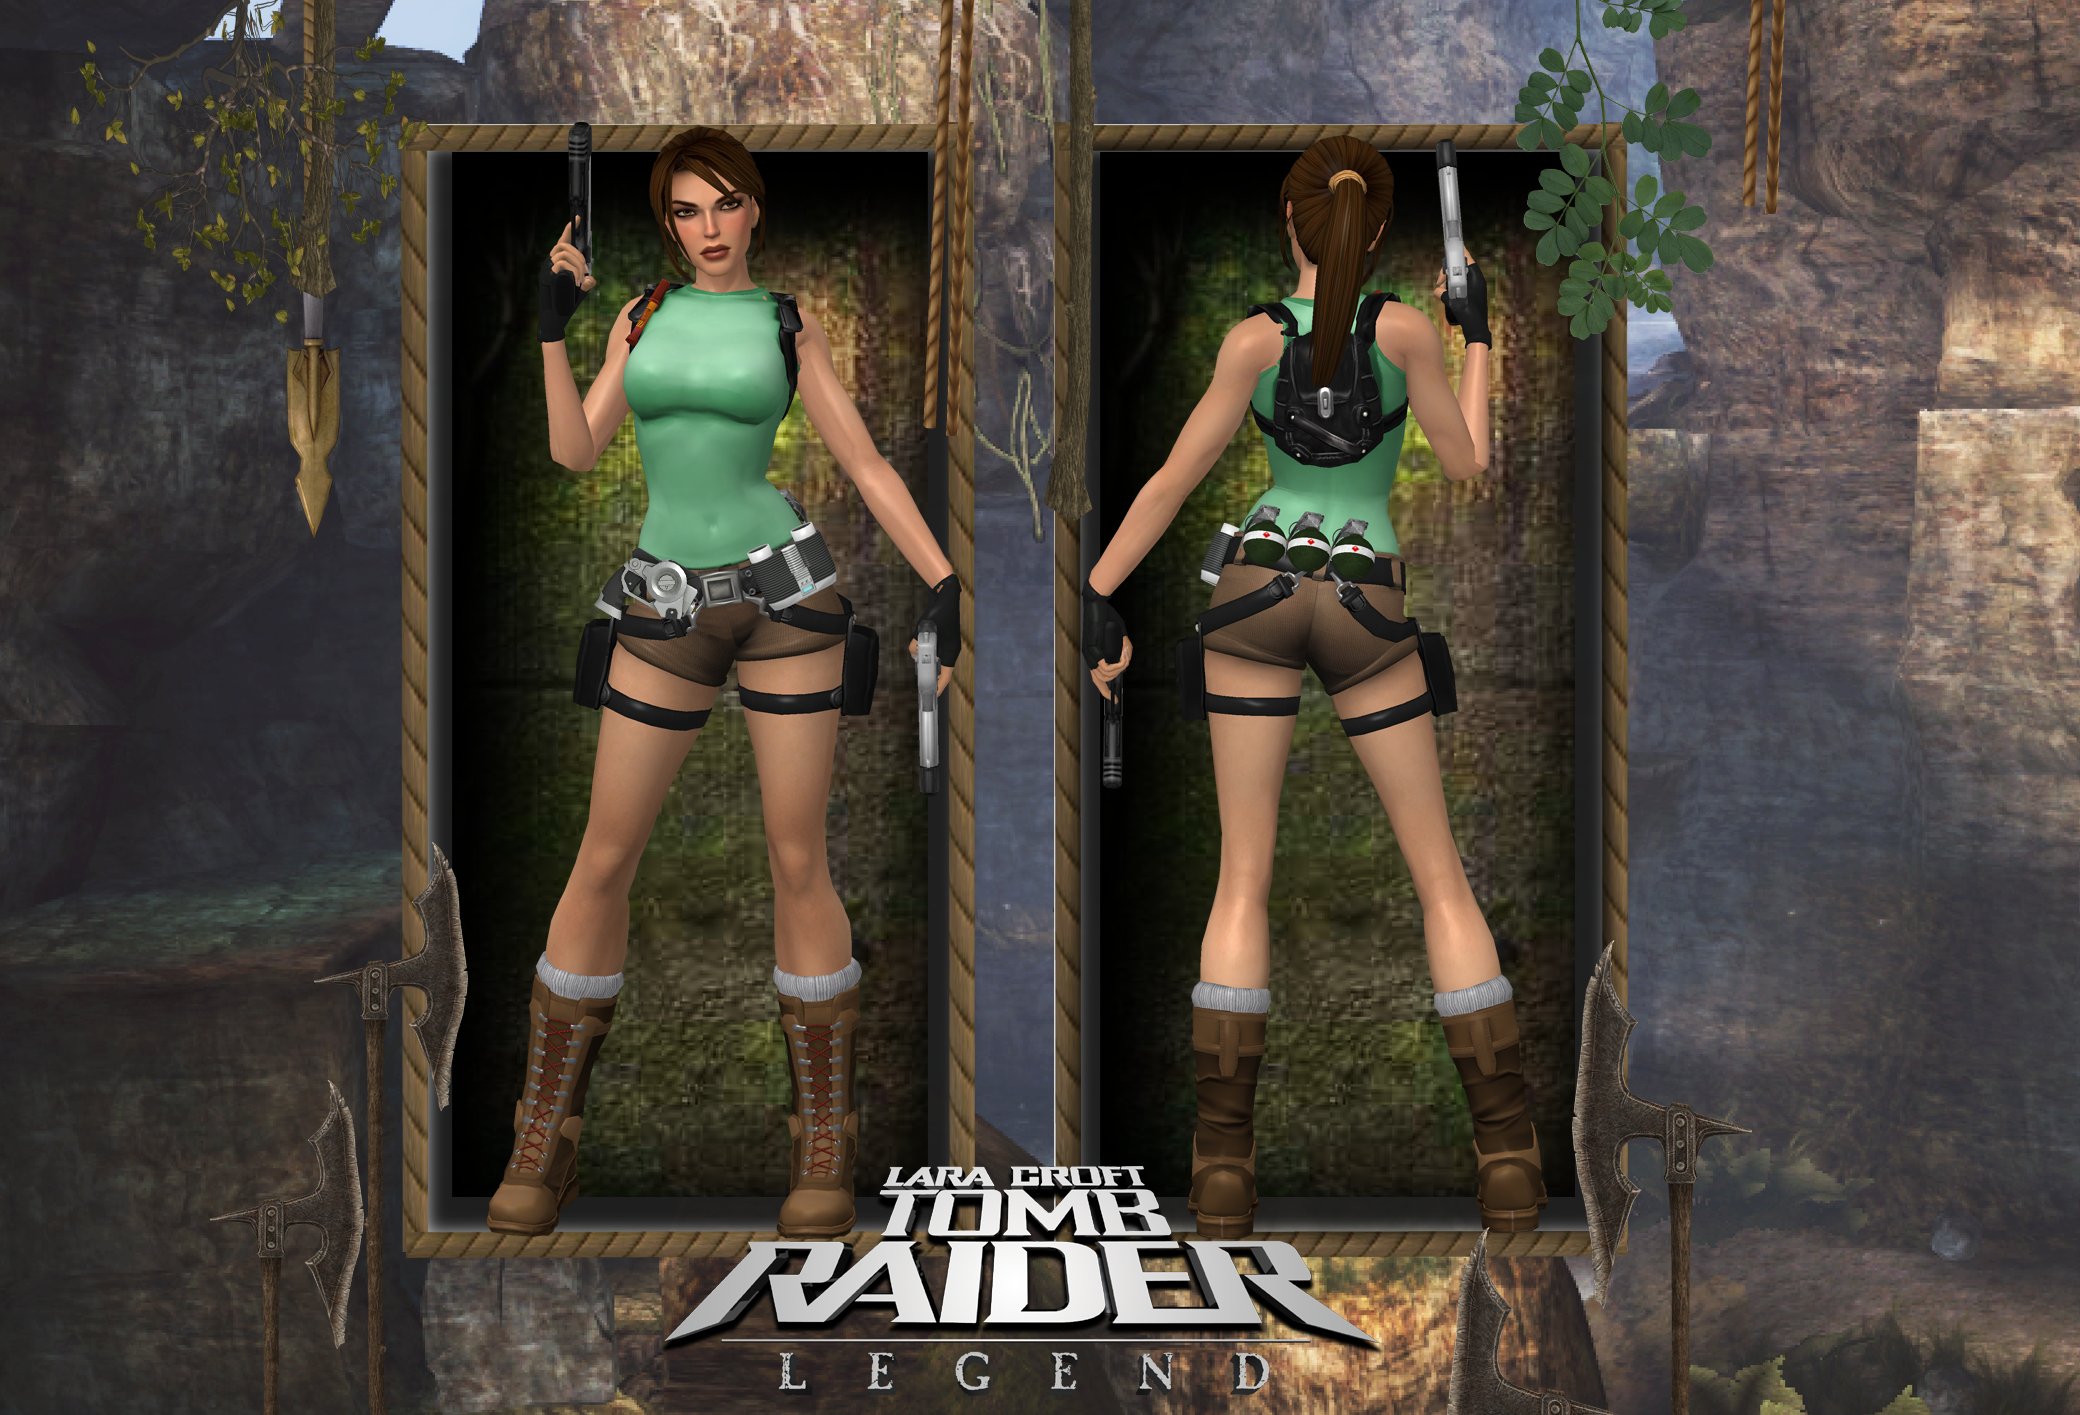 Tomb raider legend mods adult pic